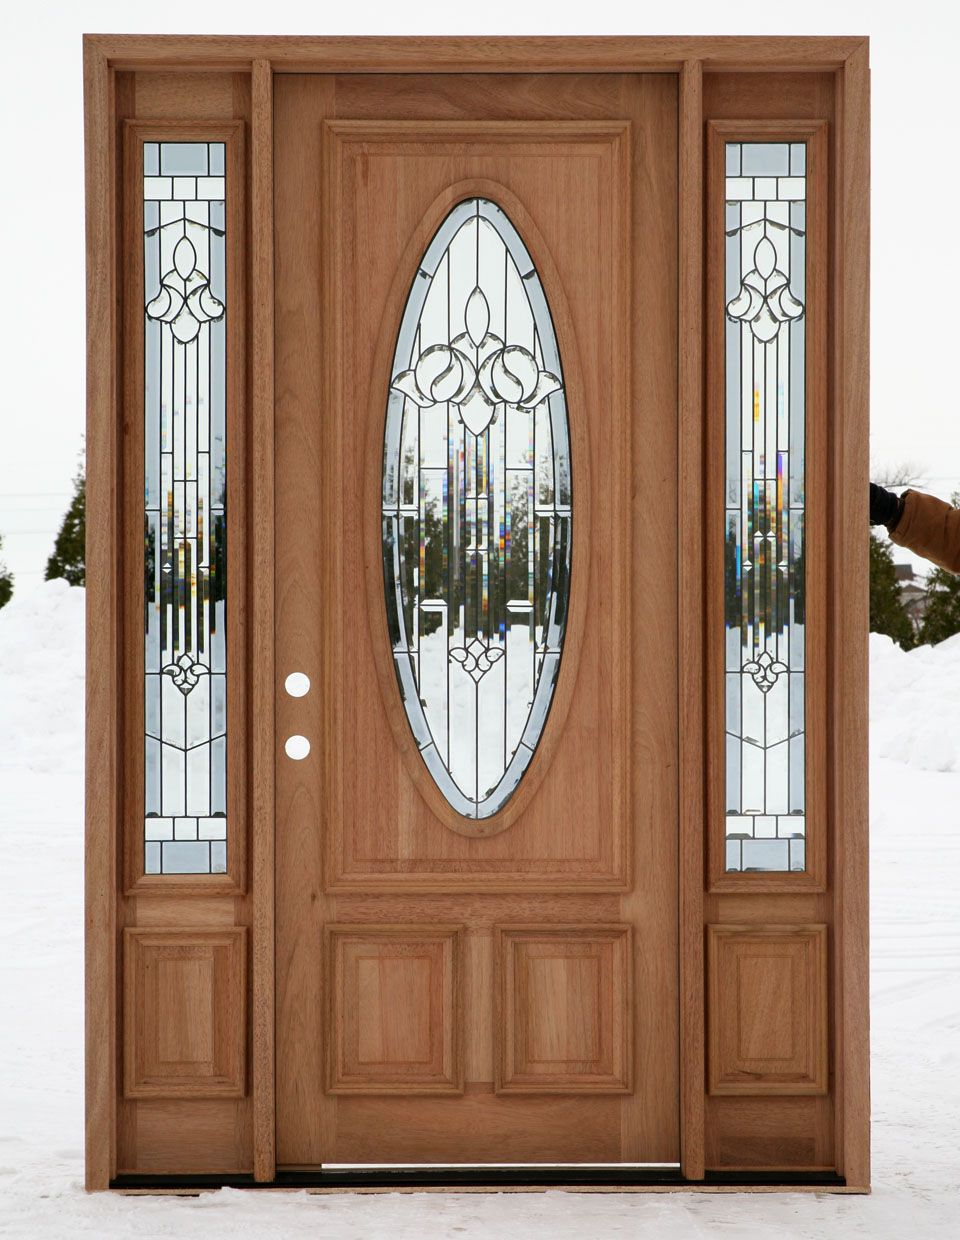 Front entrance doors exterior doors entry doors wood doors doors exterior front doors exterior entry doors with two long glass mystic and one glass oval decorative exterior front doors solid wood for homes rubansaba